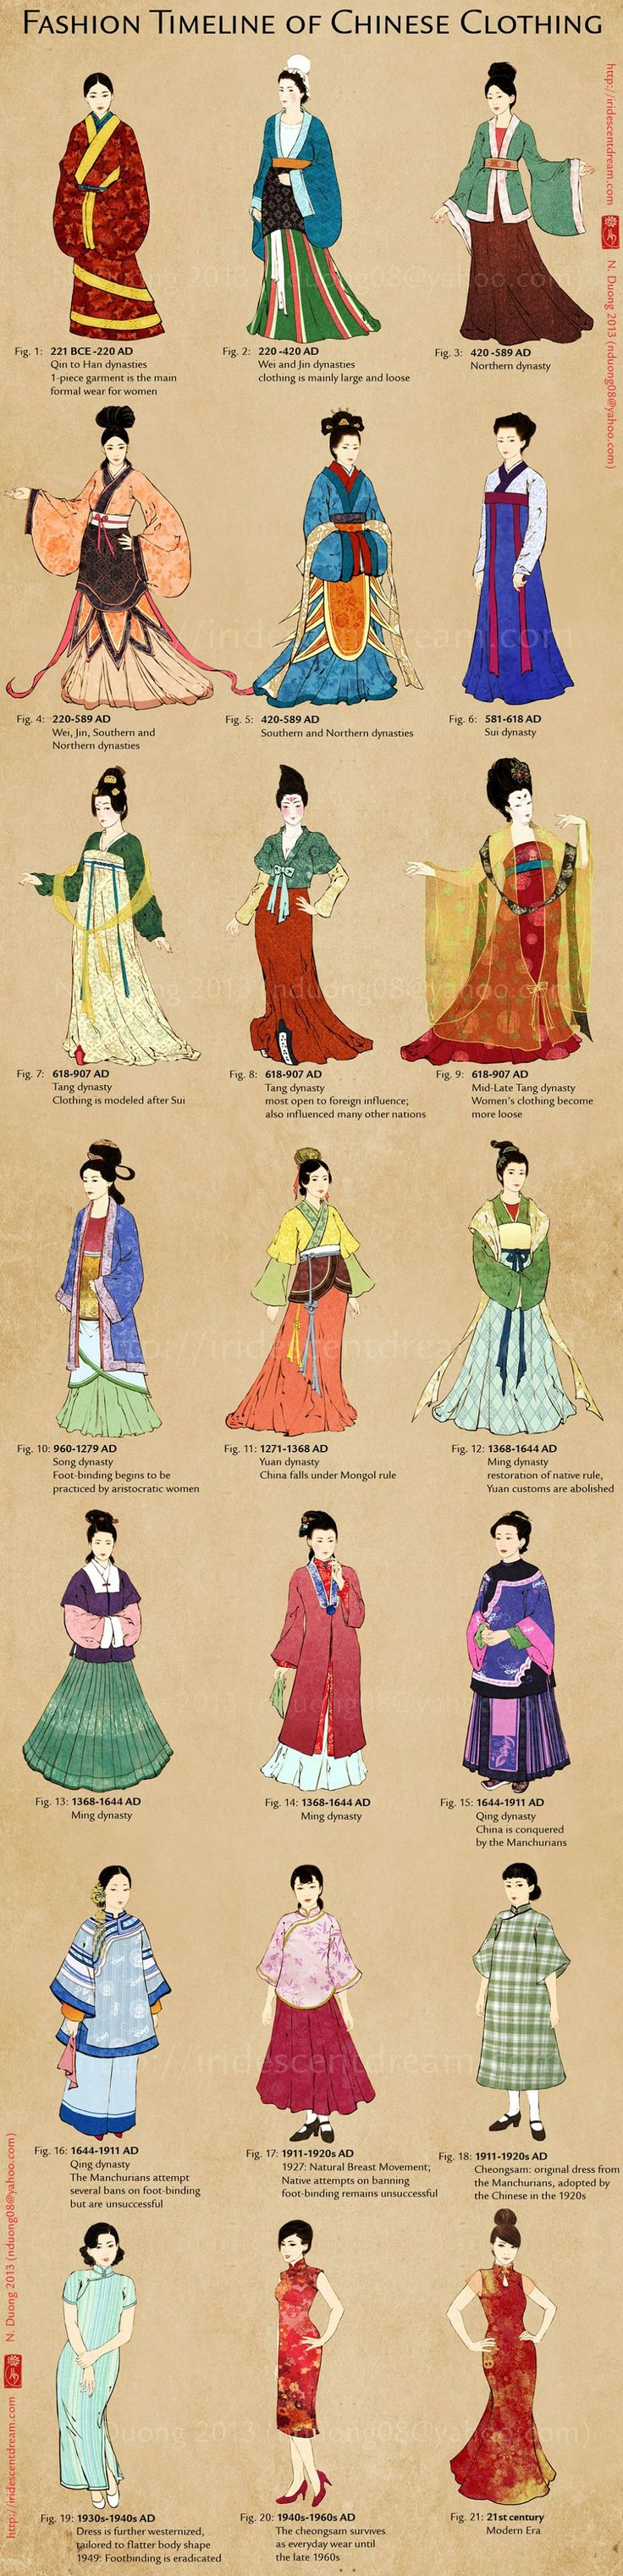 Historical Chinese women fashion                                                                                                                                                                                 Más